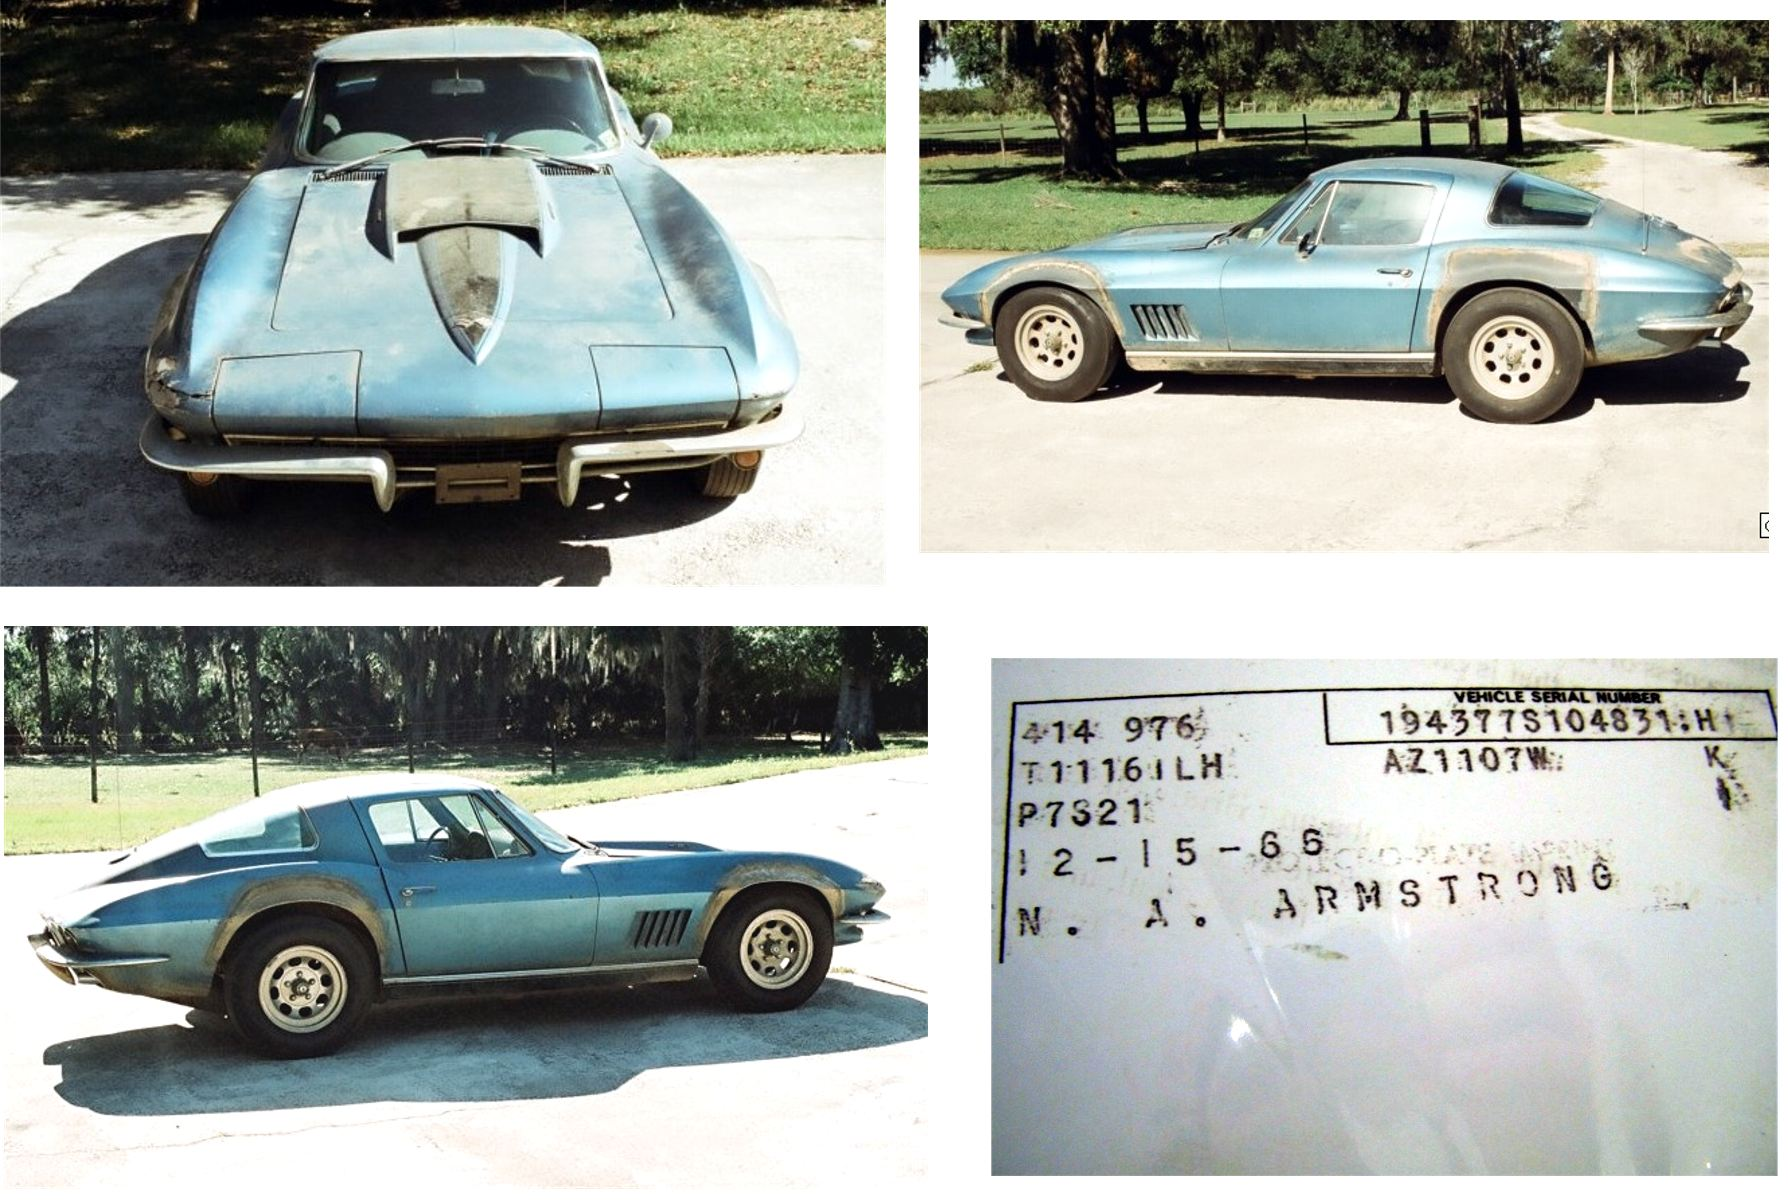 http://www.ssrfanatic.com/forum/attachments/f6/116954-1967-chevrolet-corvette-neal-.jpg